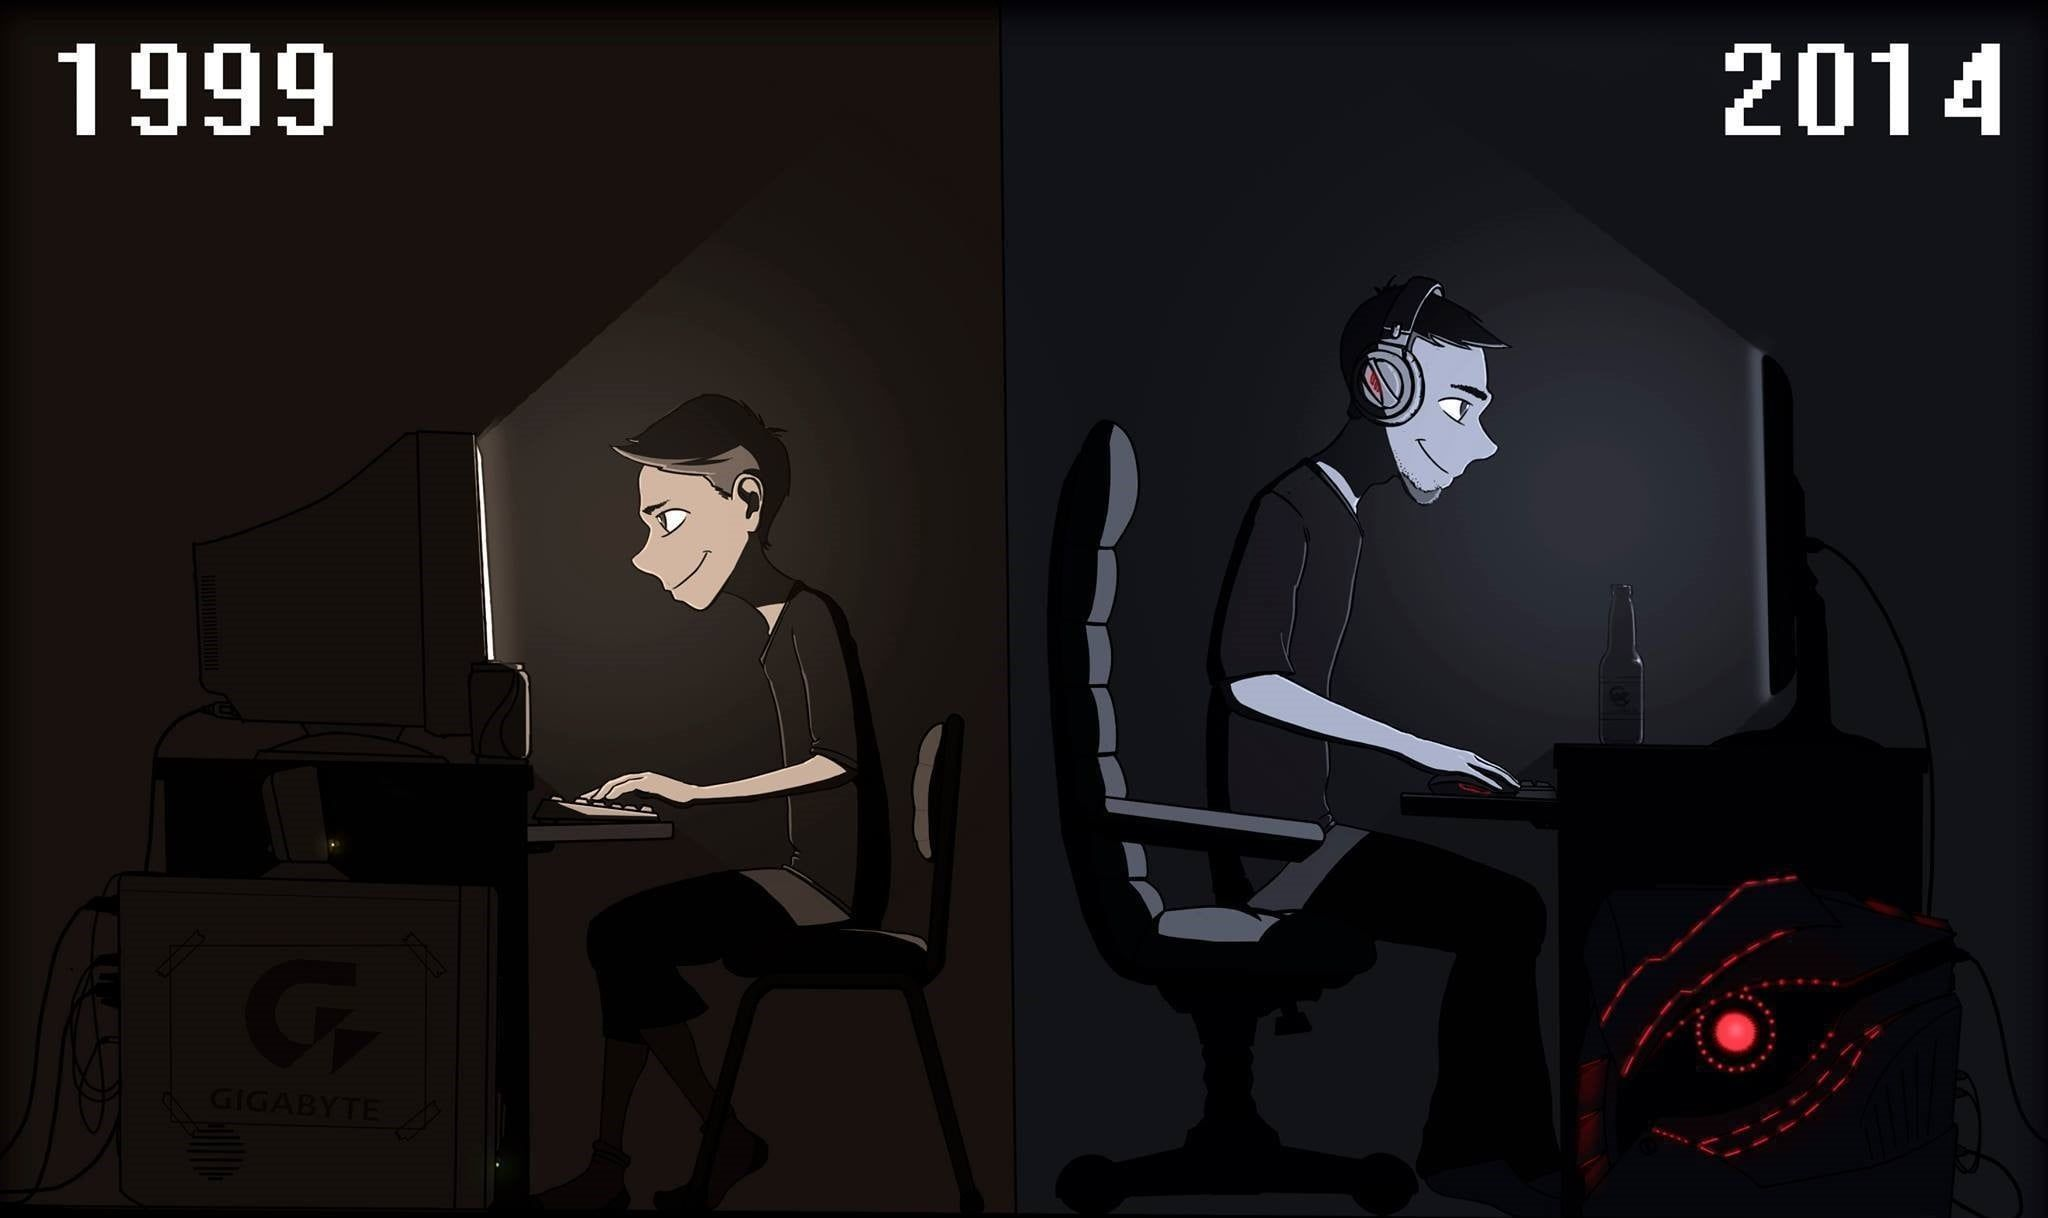 Two Man And Boy Playing Computer Illustrations Before And After Image Gigabyte Computer Gamers Pc Gaming Video Games Fundo De Animação Animação Pinterest